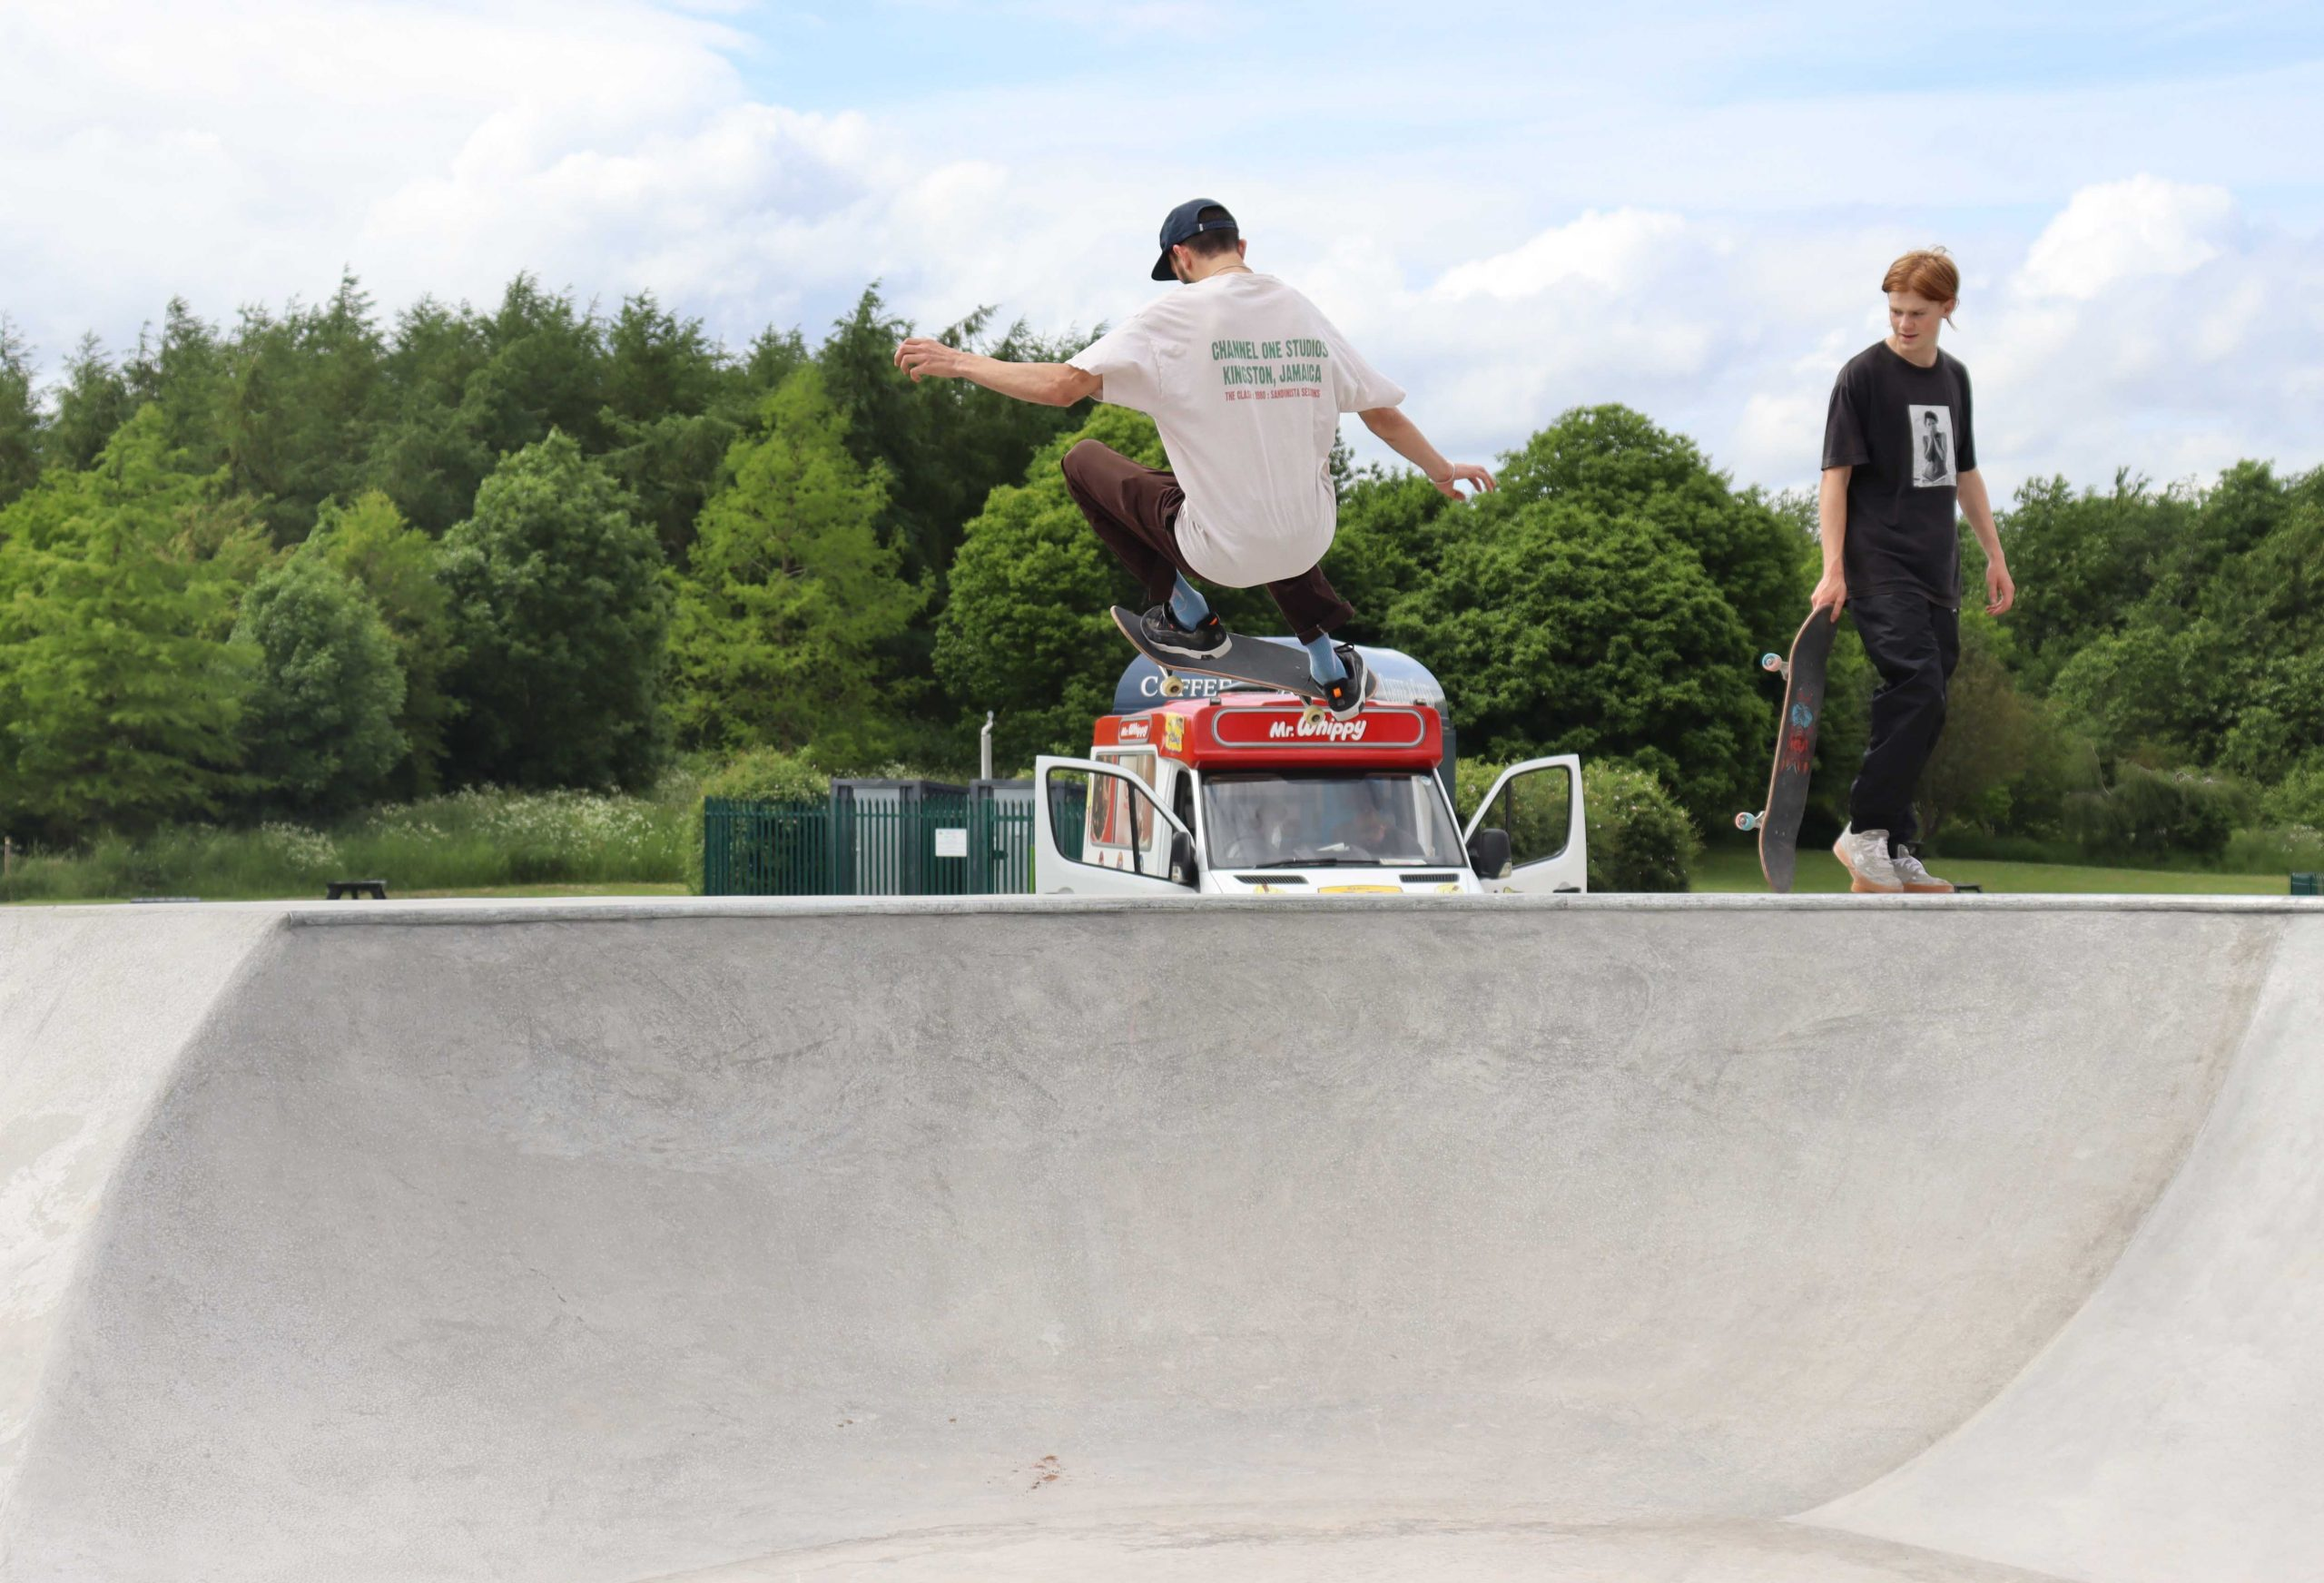 Skaters showed off their skills within minutes of the park opening scaled